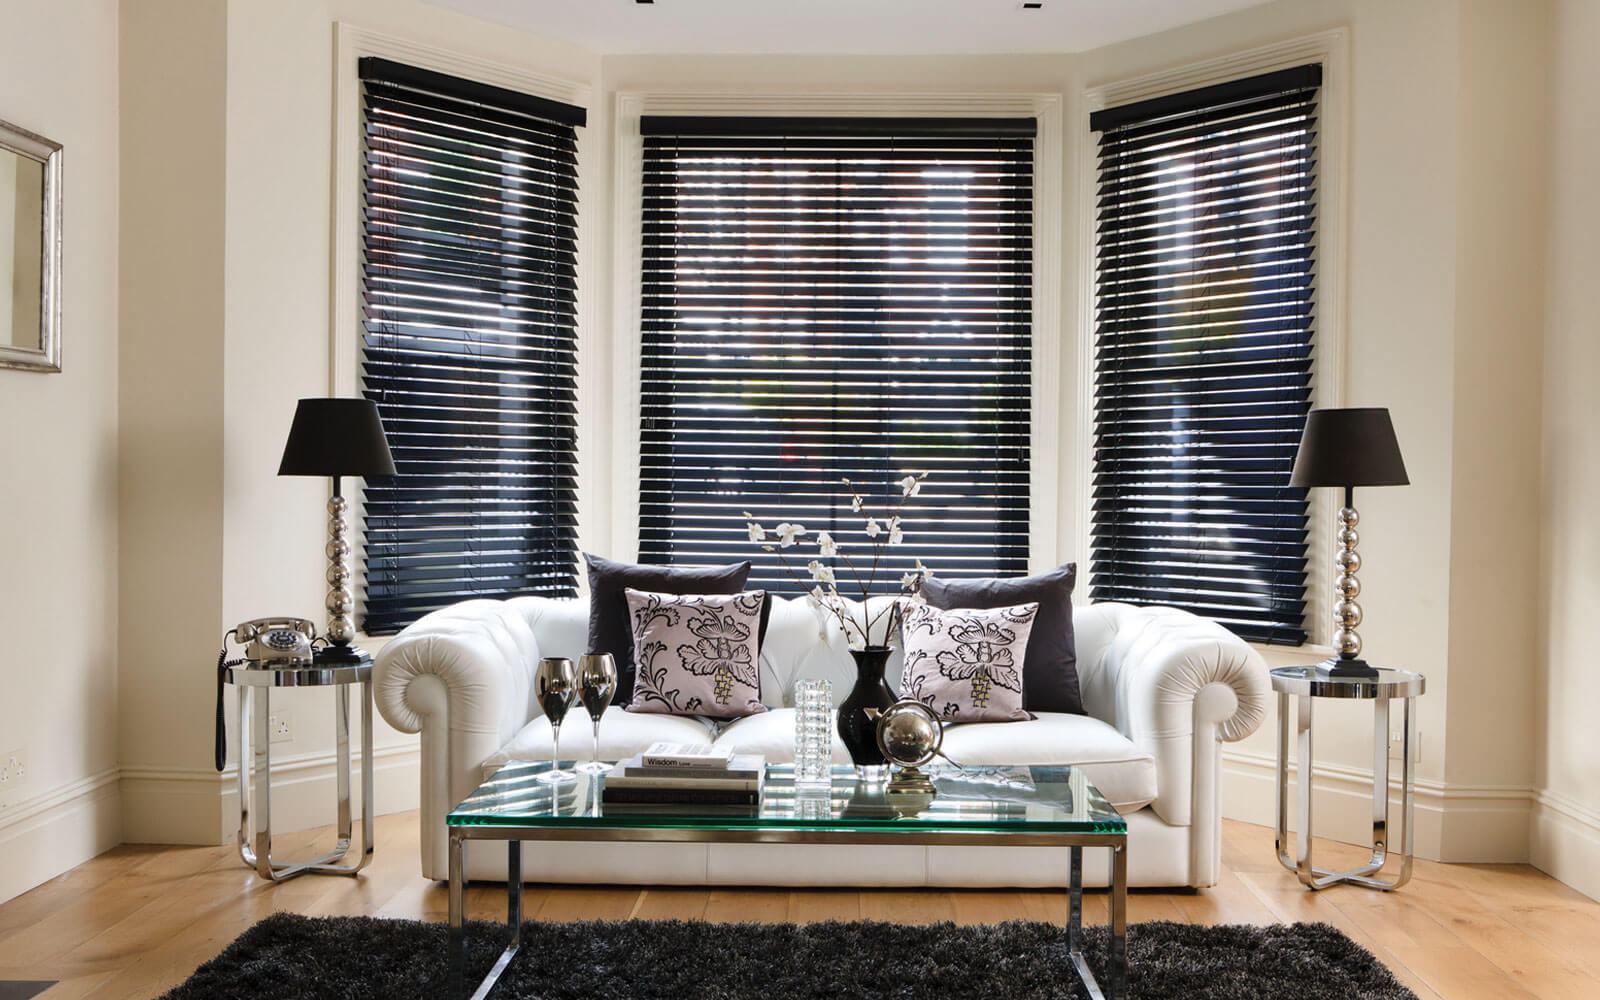 White blinds exciting window treatments for sliding glass doors